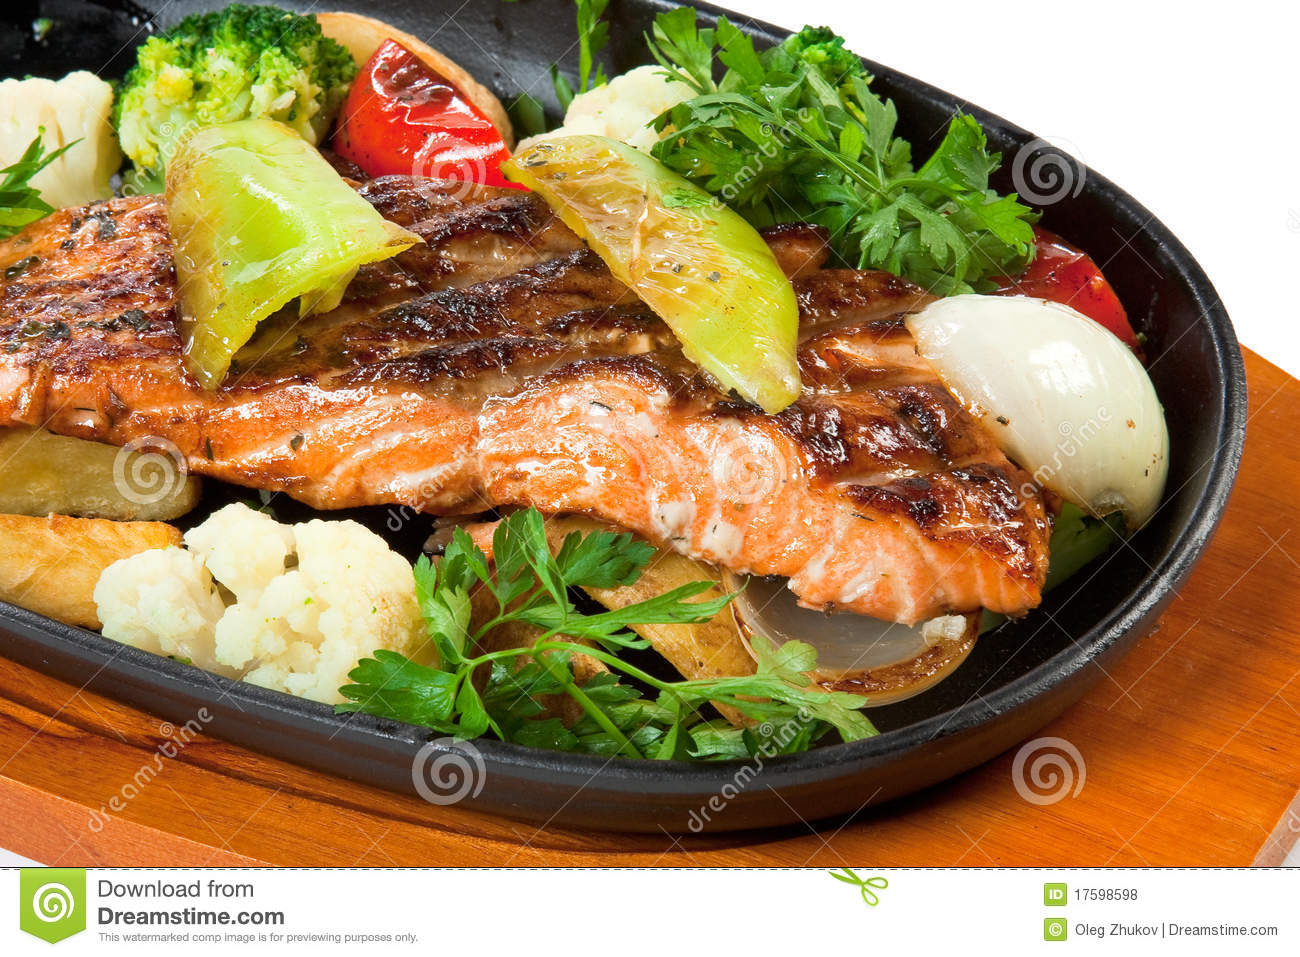 Fried fish with vegetables stock photo image of for Fish with vegetables